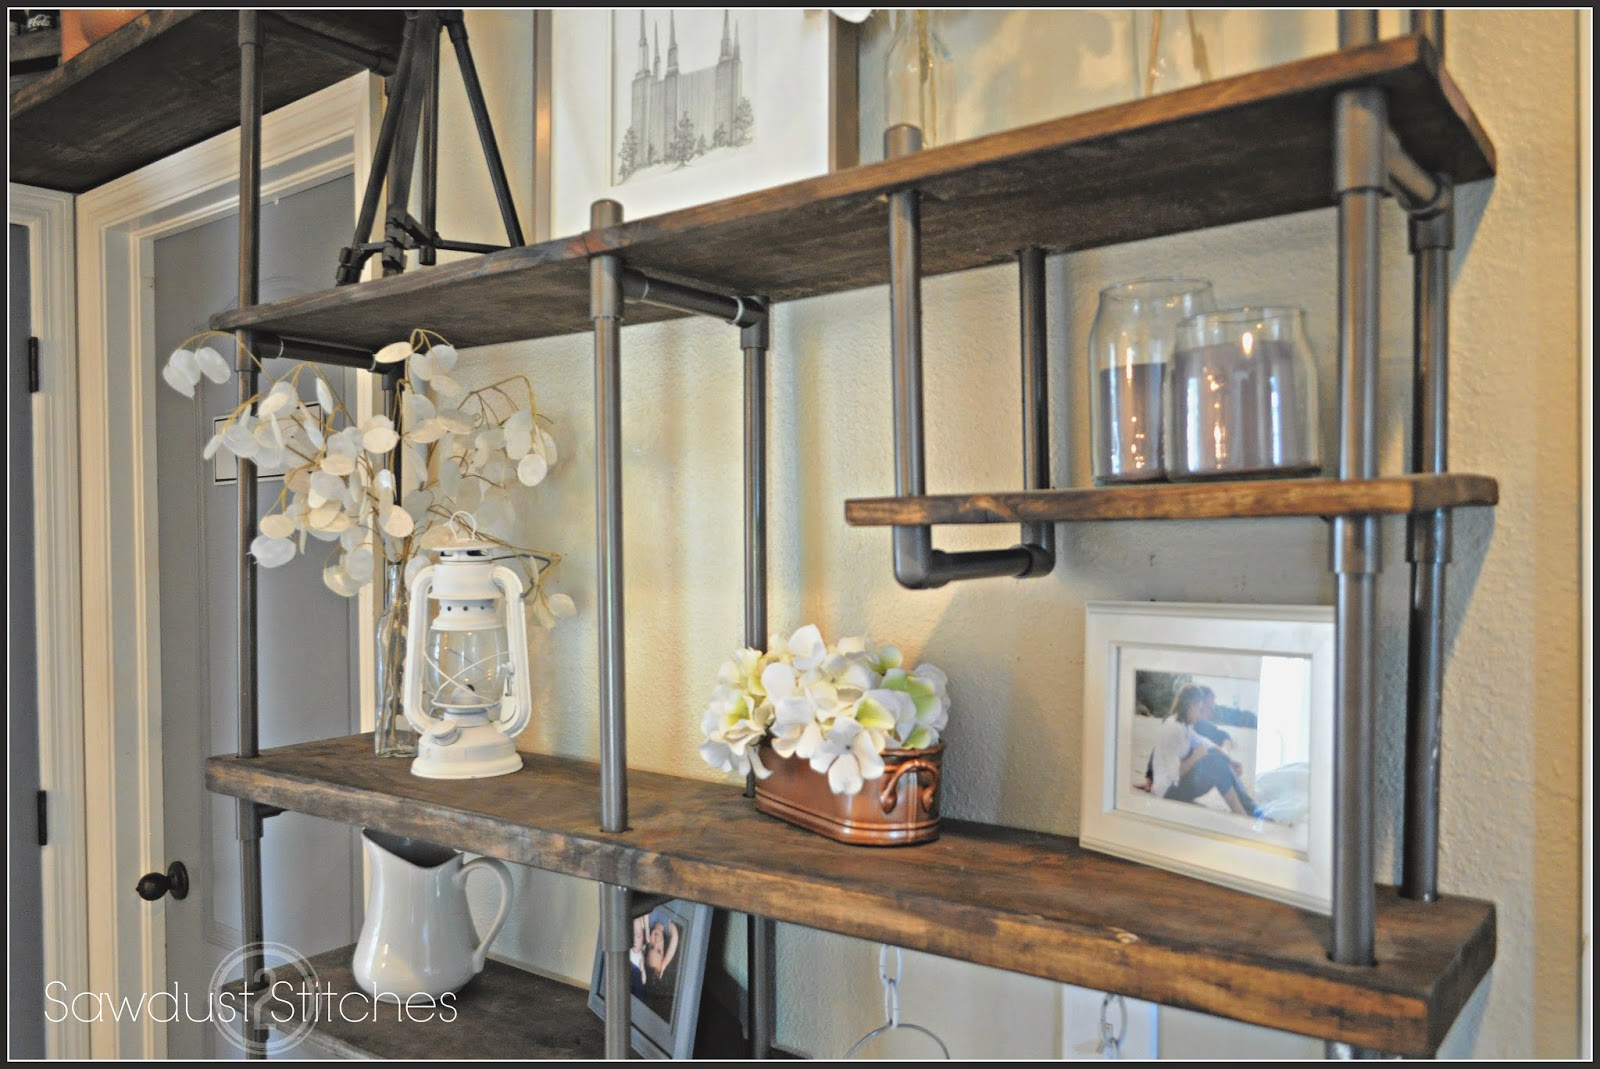 Remodelaholic | Build a Budget-Friendly Industrial Shelf ... on plumbing pipe shelving, pantry pipe shelving, wood and pipe shelving, kitchen butcher block pipe, closet pipe shelving, tv pipe shelving,